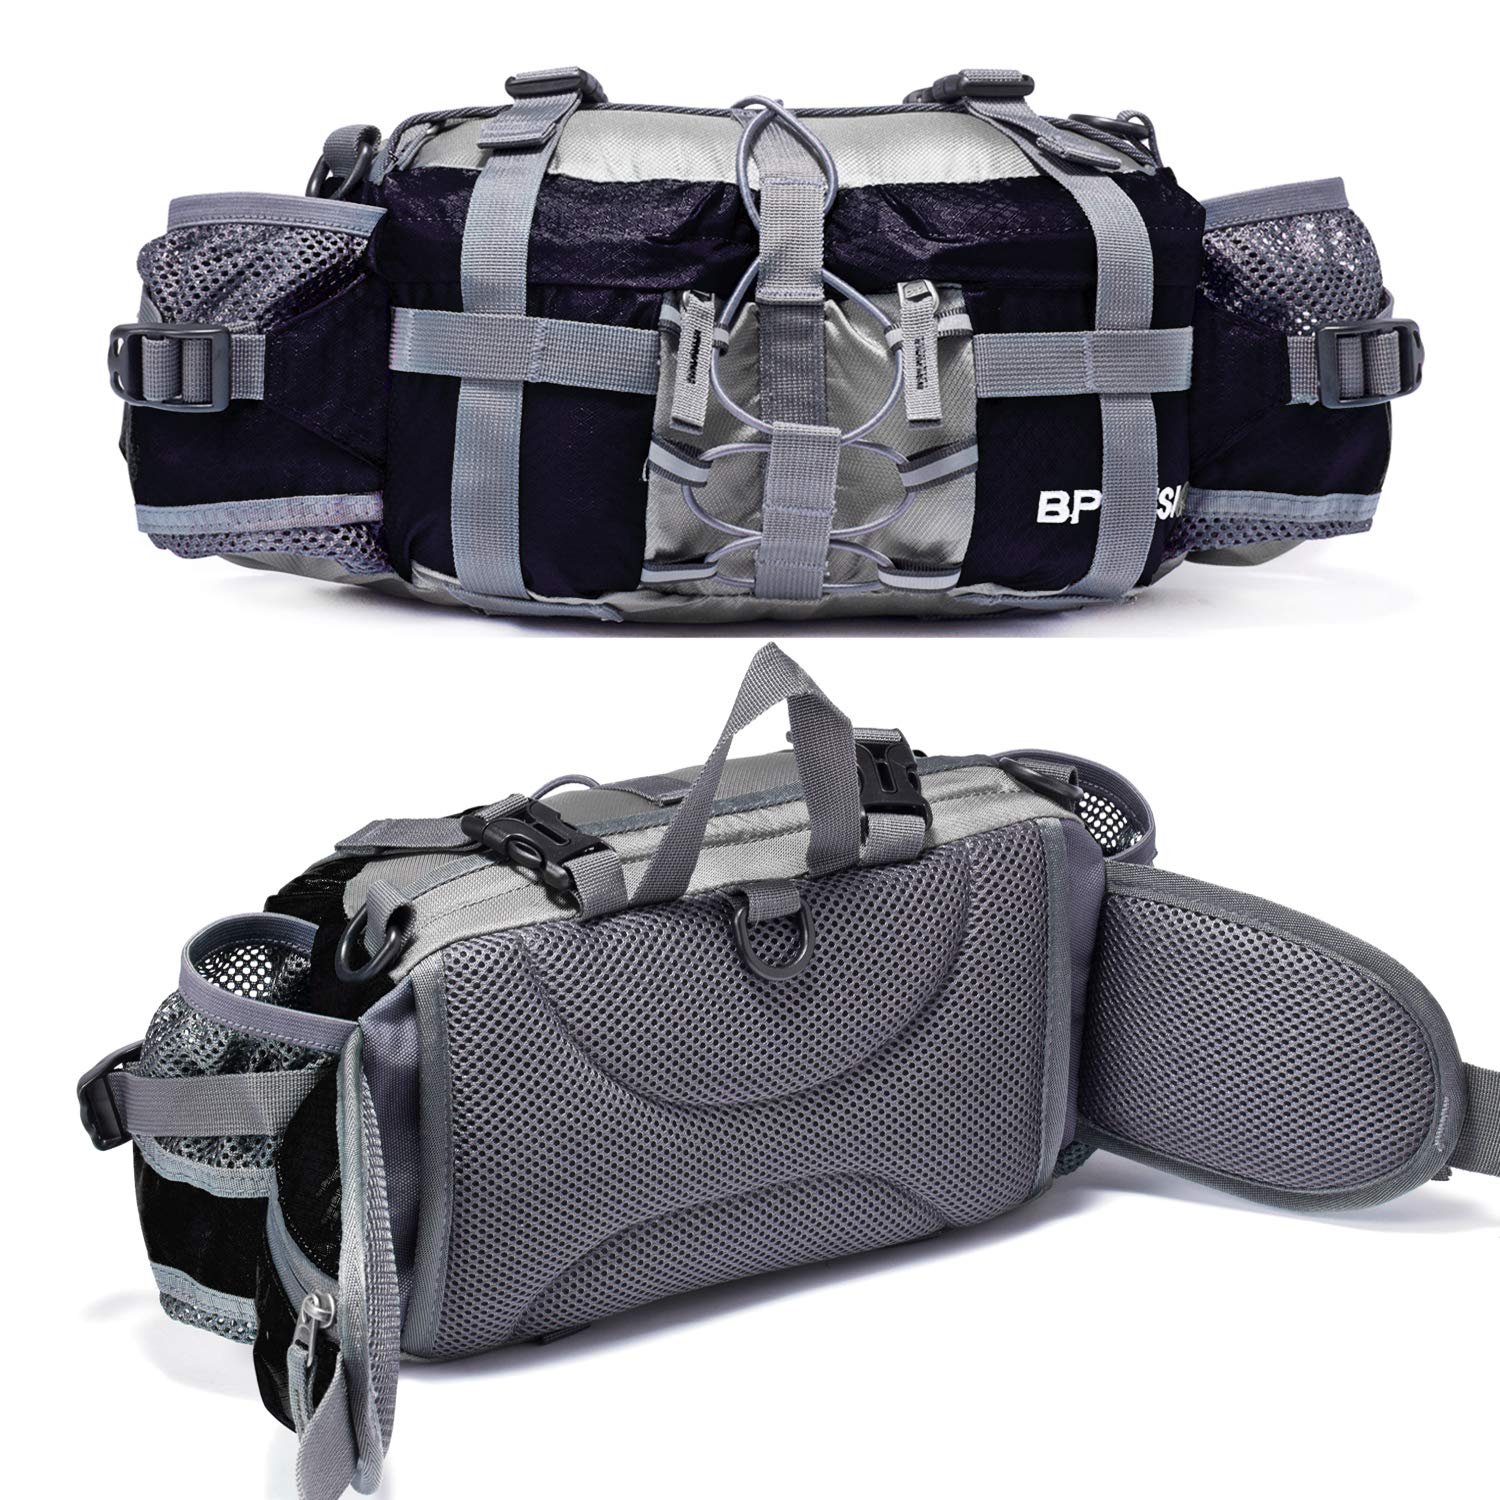 Bp Vision Outdoor Fanny Pack Hiking Camping Biking Waterproof Waist Pack 2 Water Bottle Holder Sports Bag for Women and Men Black by Bp Vision